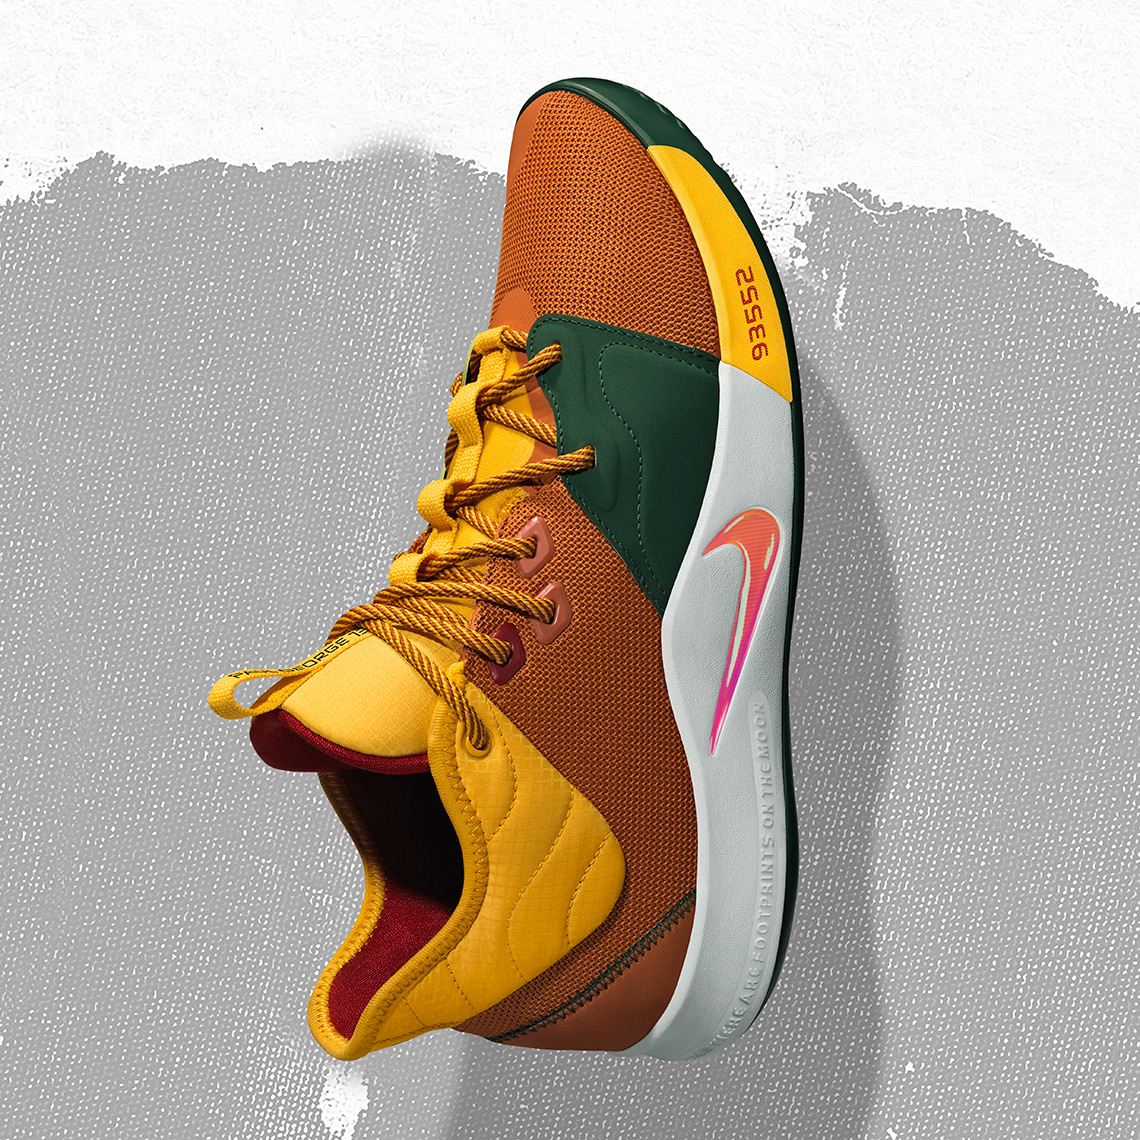 2ebe87df431 Nike combines Paul George s newest signature shoe with a classic  outdoors-ready ACG color palette. Release Date  February 15th